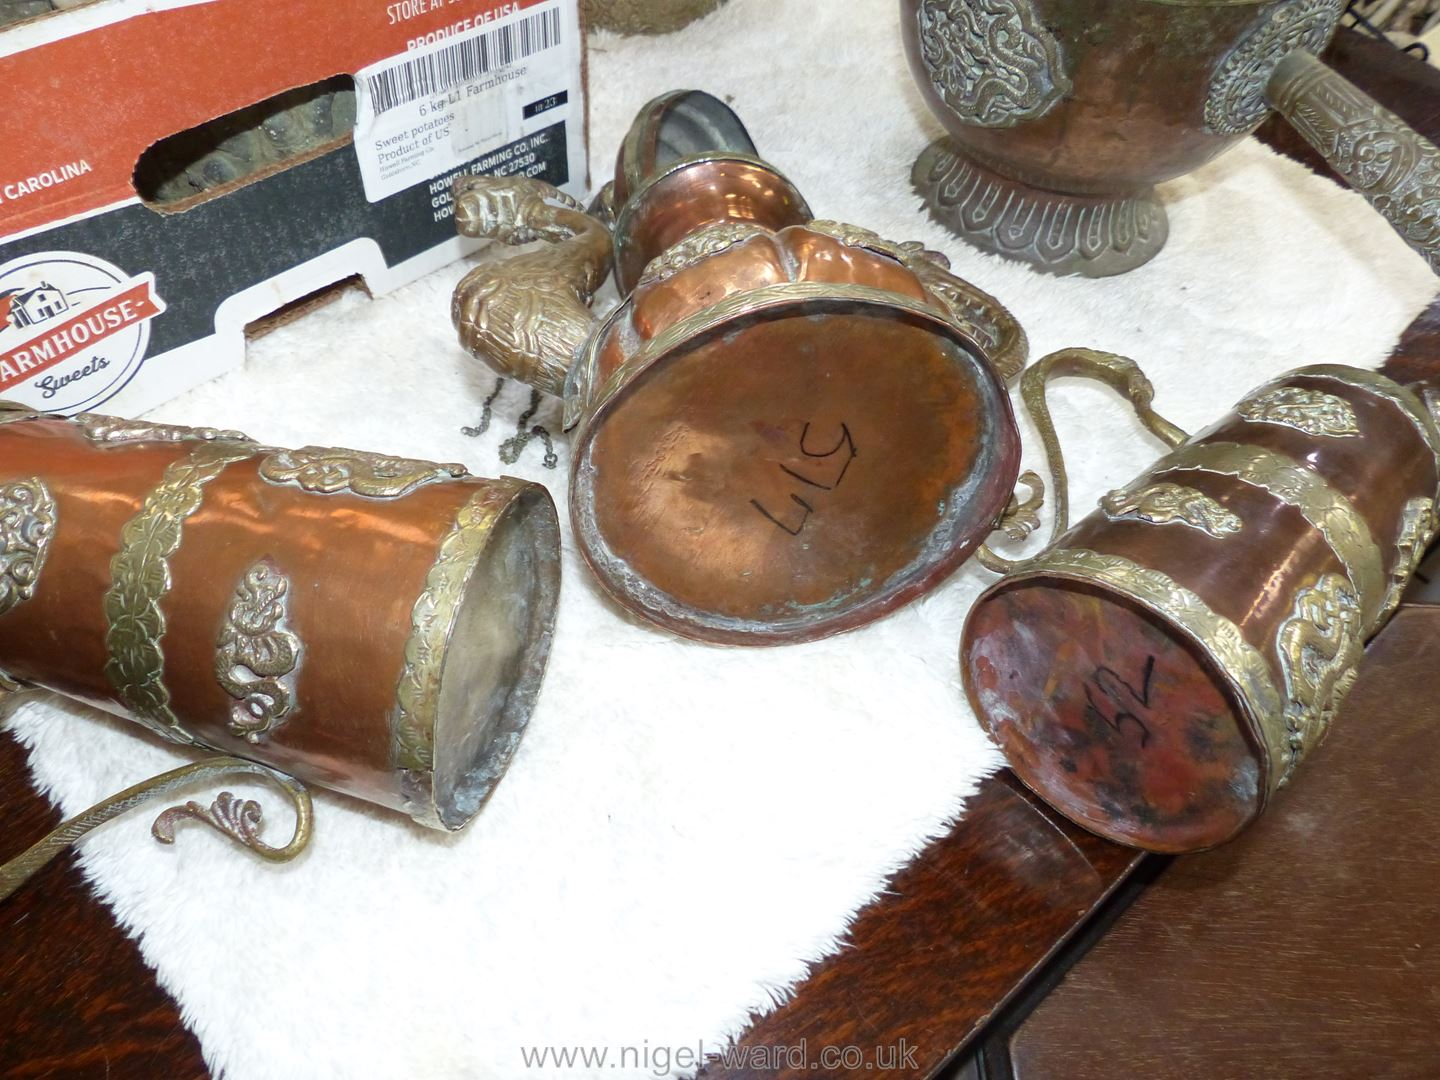 A small copper and brass ceremonial Dragon teapot with lid on chain, - Image 7 of 7